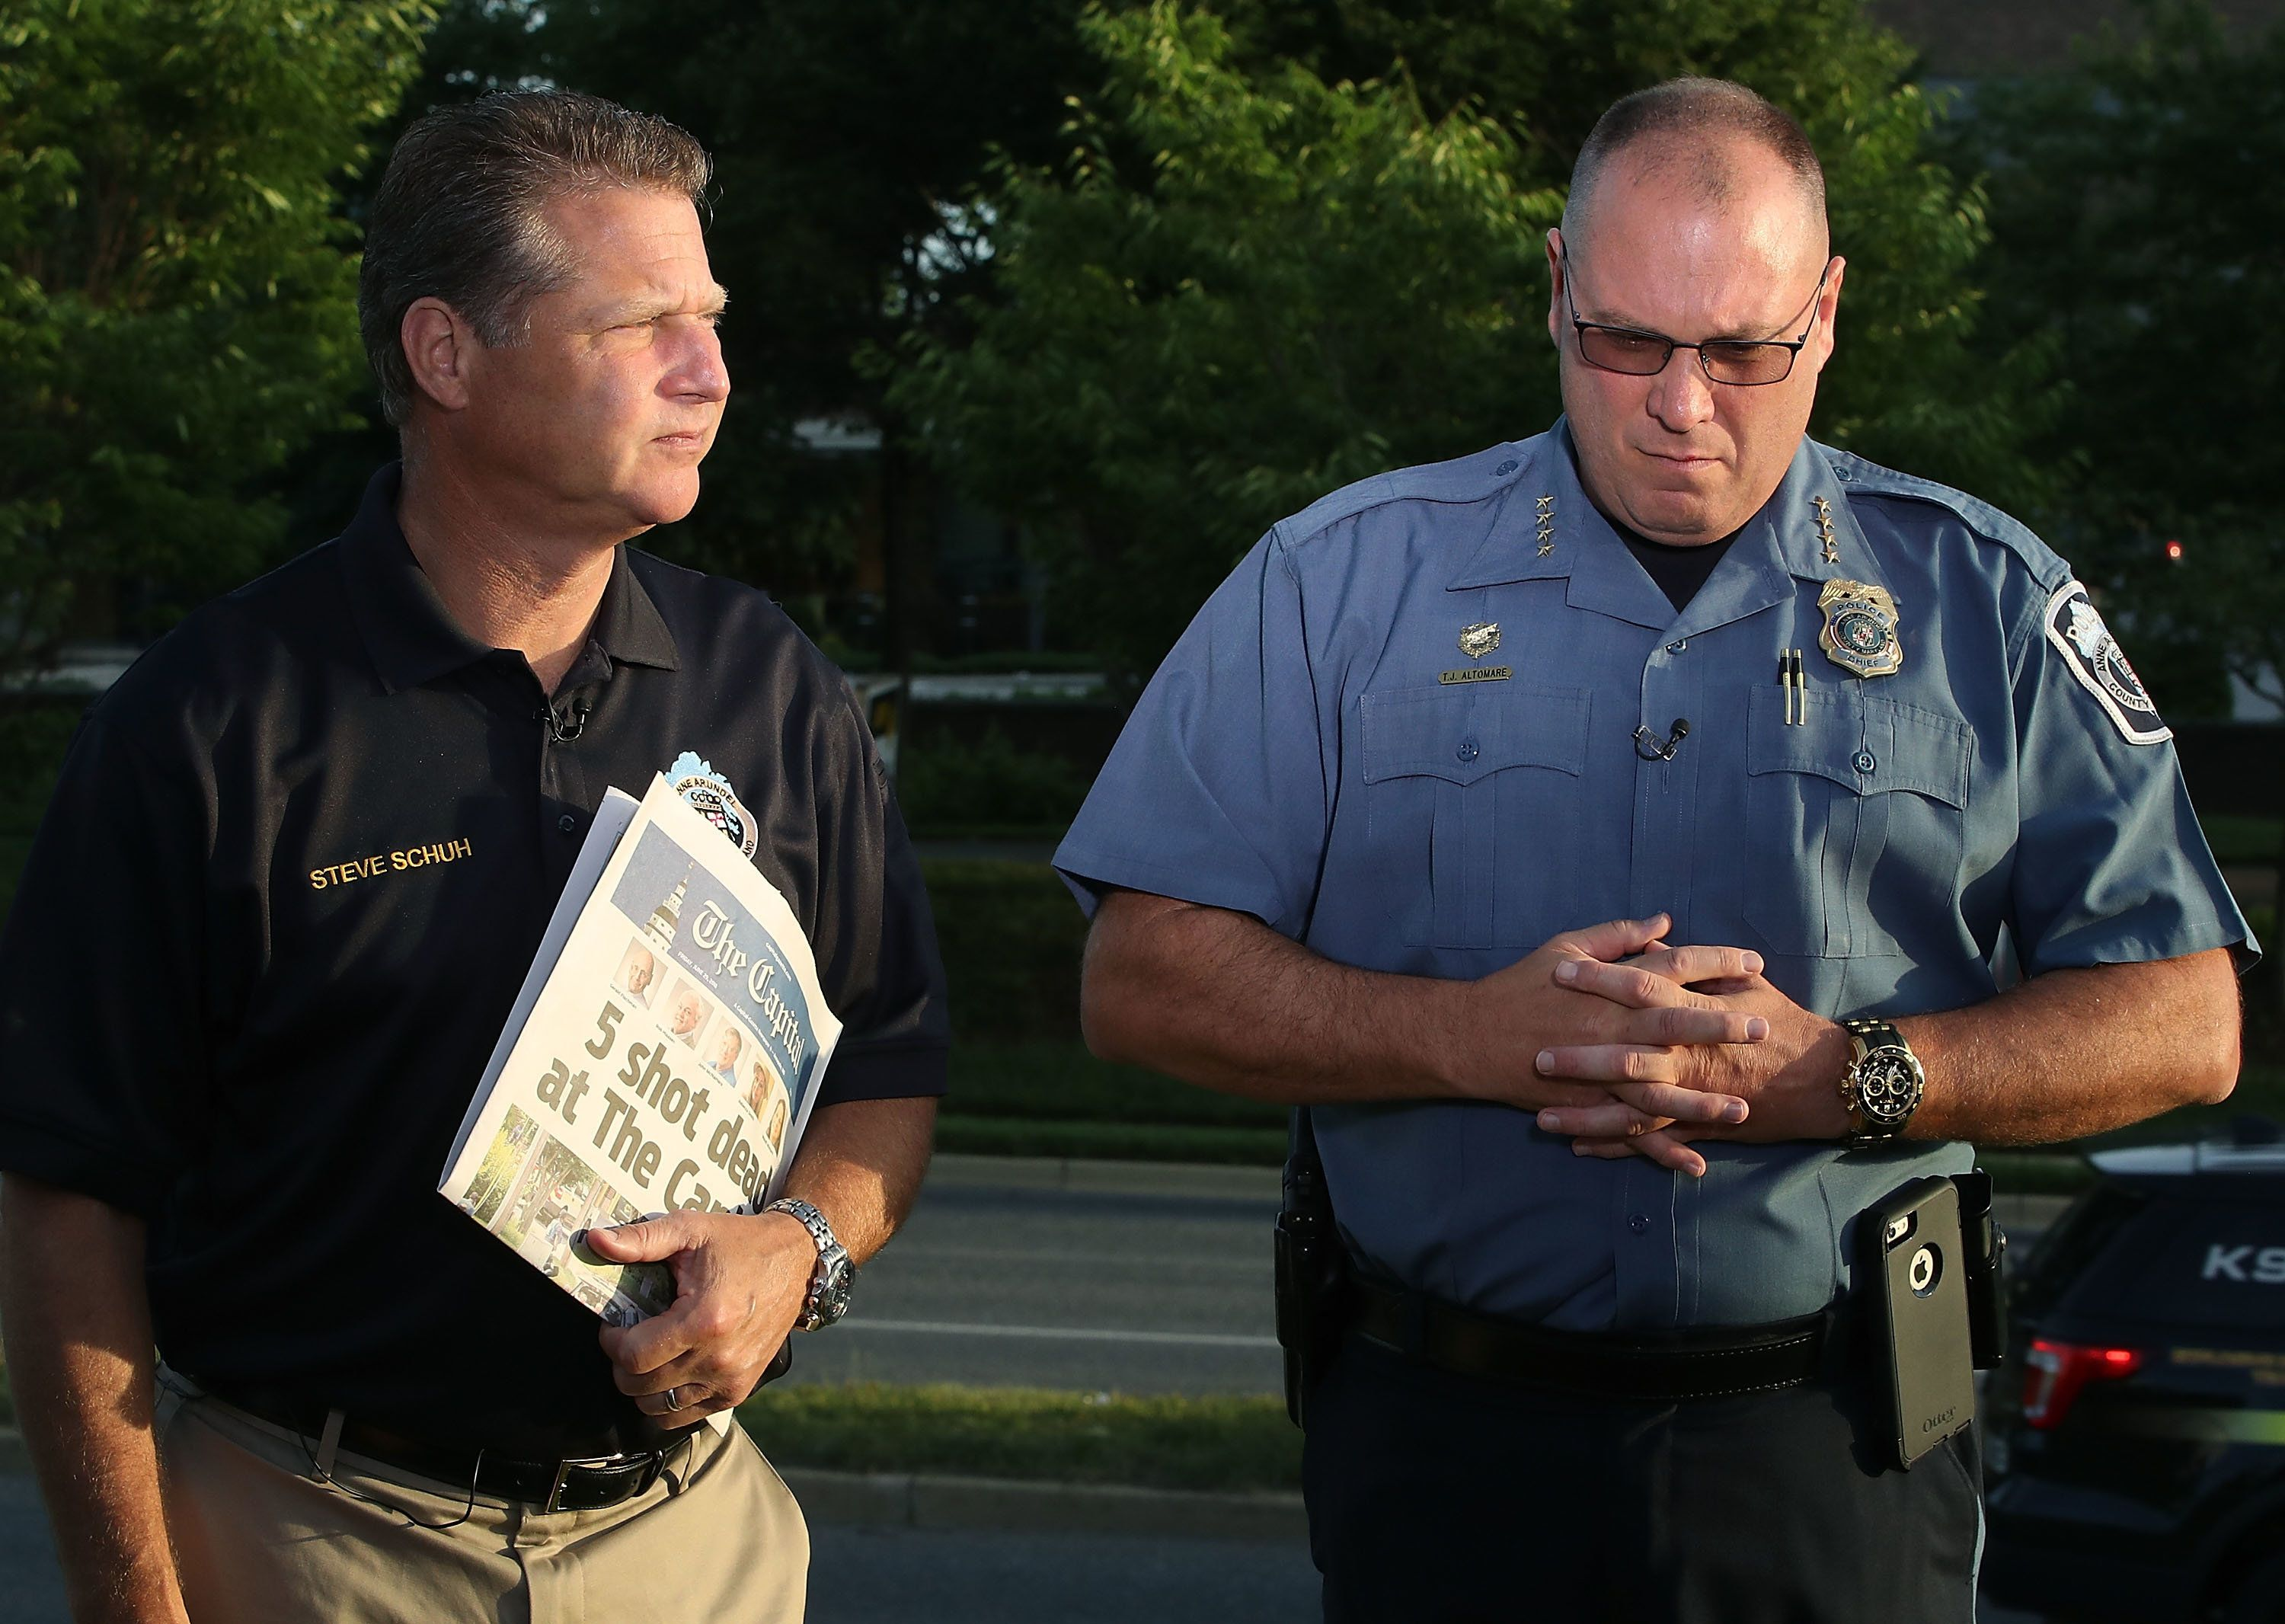 ANNAPOLIS, MD - JUNE 29: Anne Arundel County Executive Steven Schuh (L), and Anne Arundel County Police Chief Tim Altomare, give a television interview near the Capital Gazette where 5 people were shot and killed by a gunman on Thursday, on June 289, 2018 in Annapolis, Maryland. Jarrod Ramos of Laurel Md. has been arrested and charged with killing 5 people at the daily newspaper.  (Photo by Mark Wilson/Getty Images)